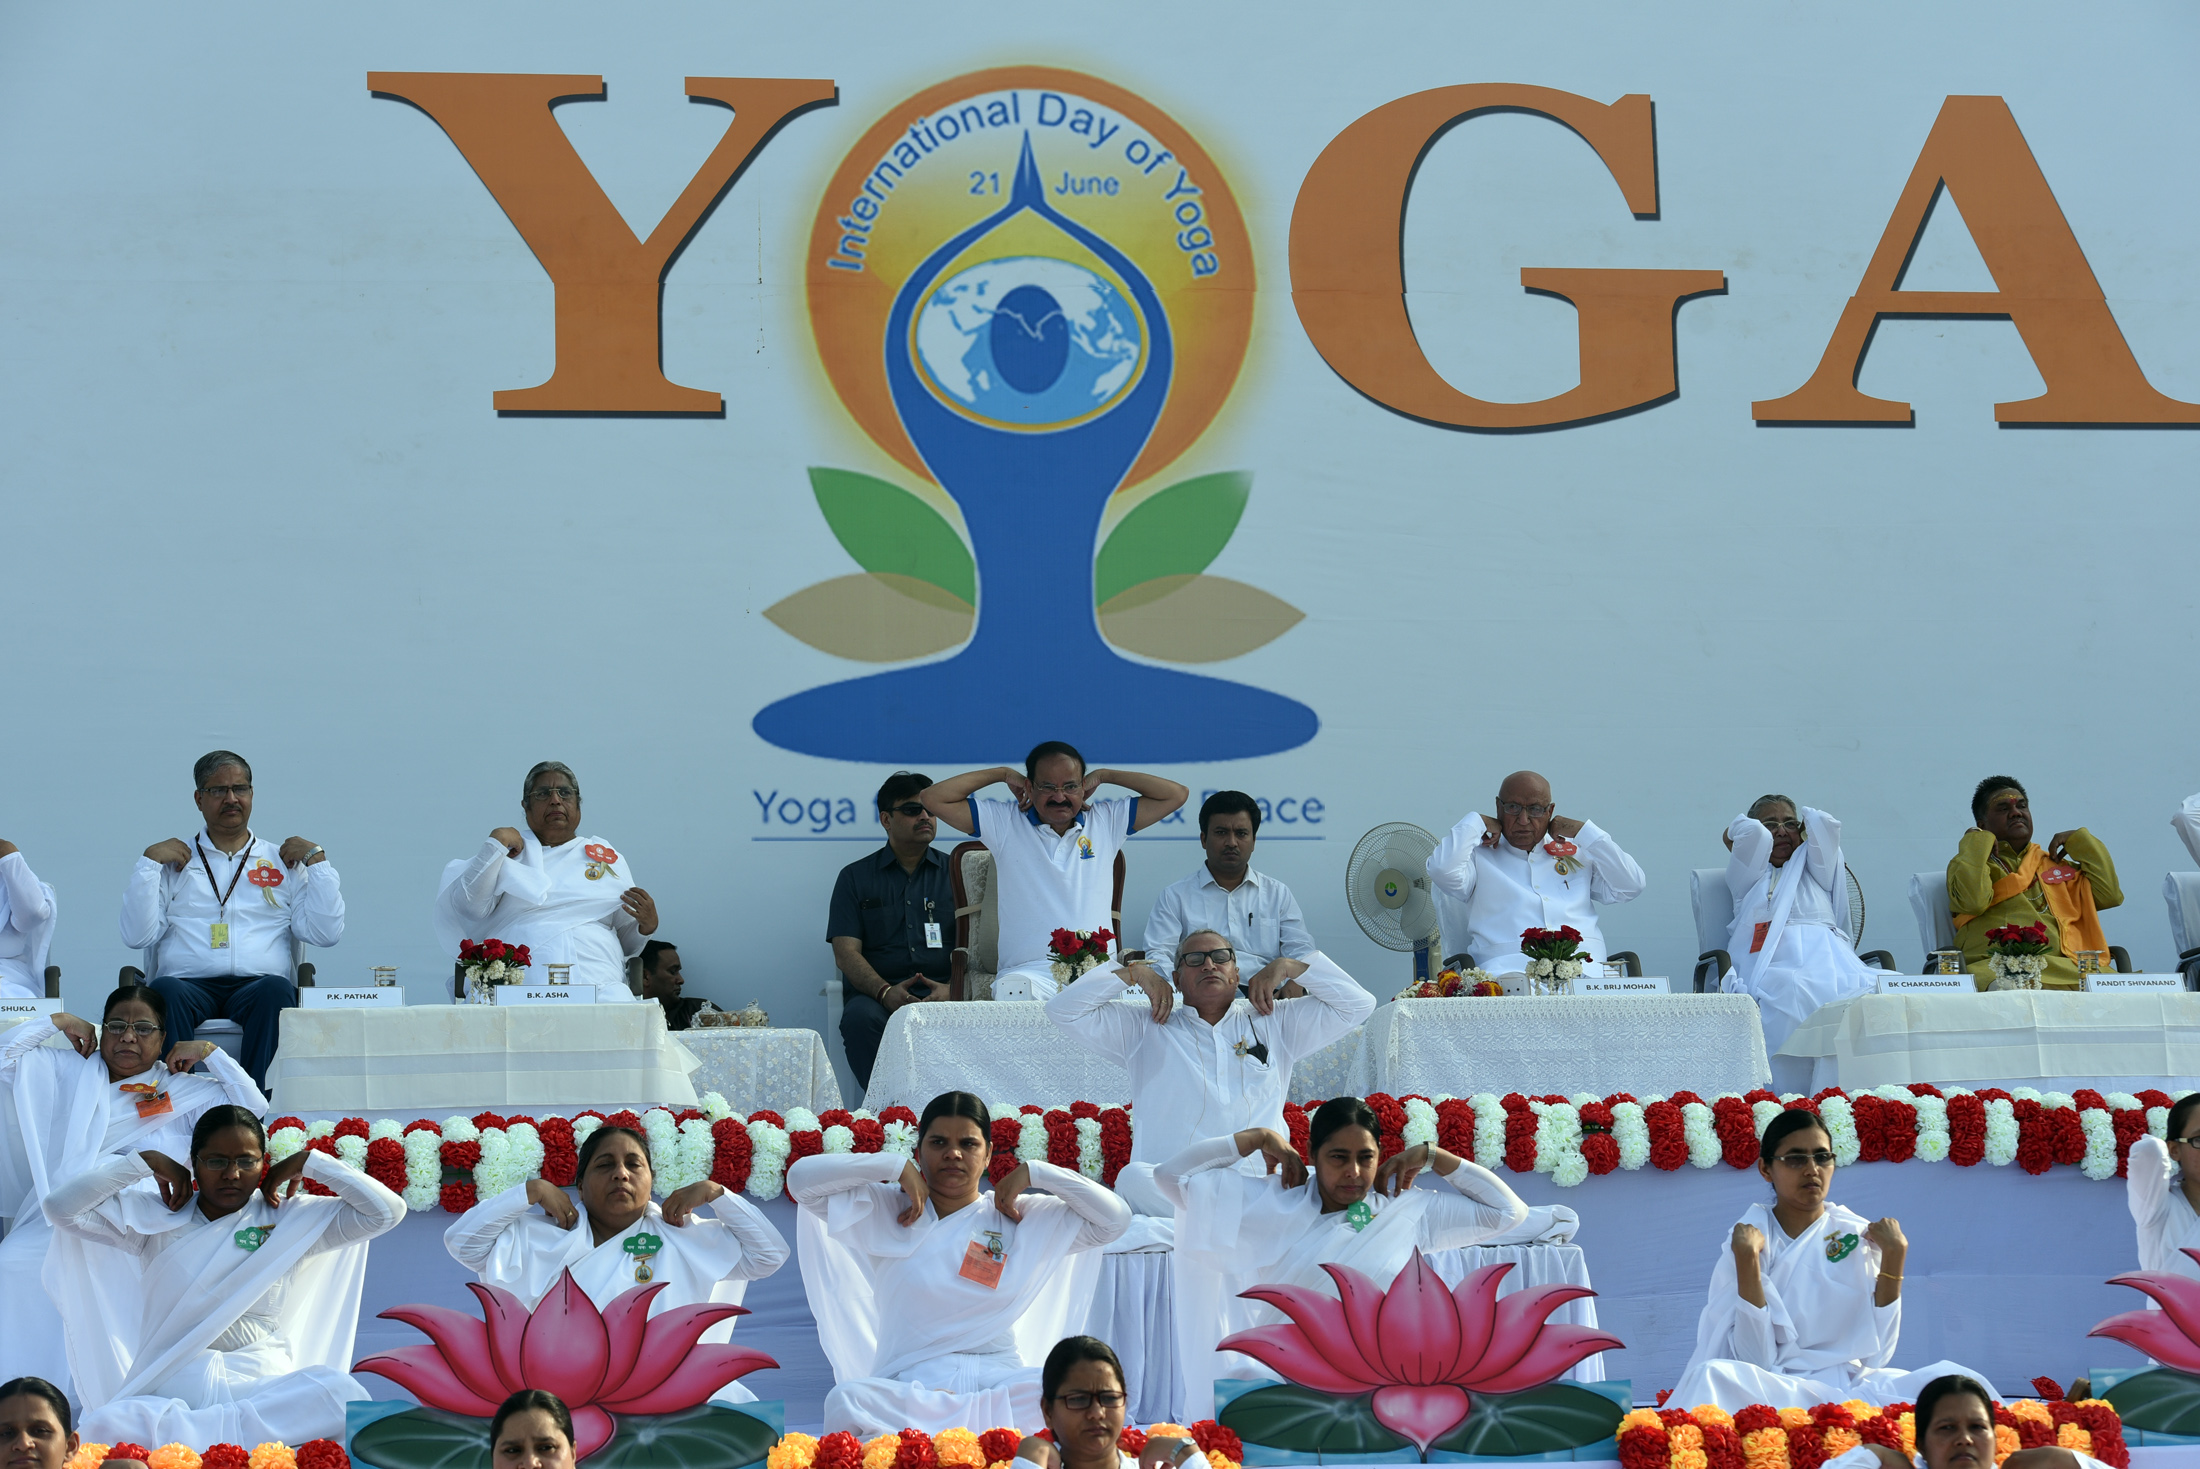 The Vice President, Shri M. Venkaiah Naidu practicing Yoga Aasanas at the International Day of Yoga celebrations organized by Prajapita Brahma Kumaris Vishwa Vidyalaya, at the Red Fort grounds, in Delhi on June 21, 2019.